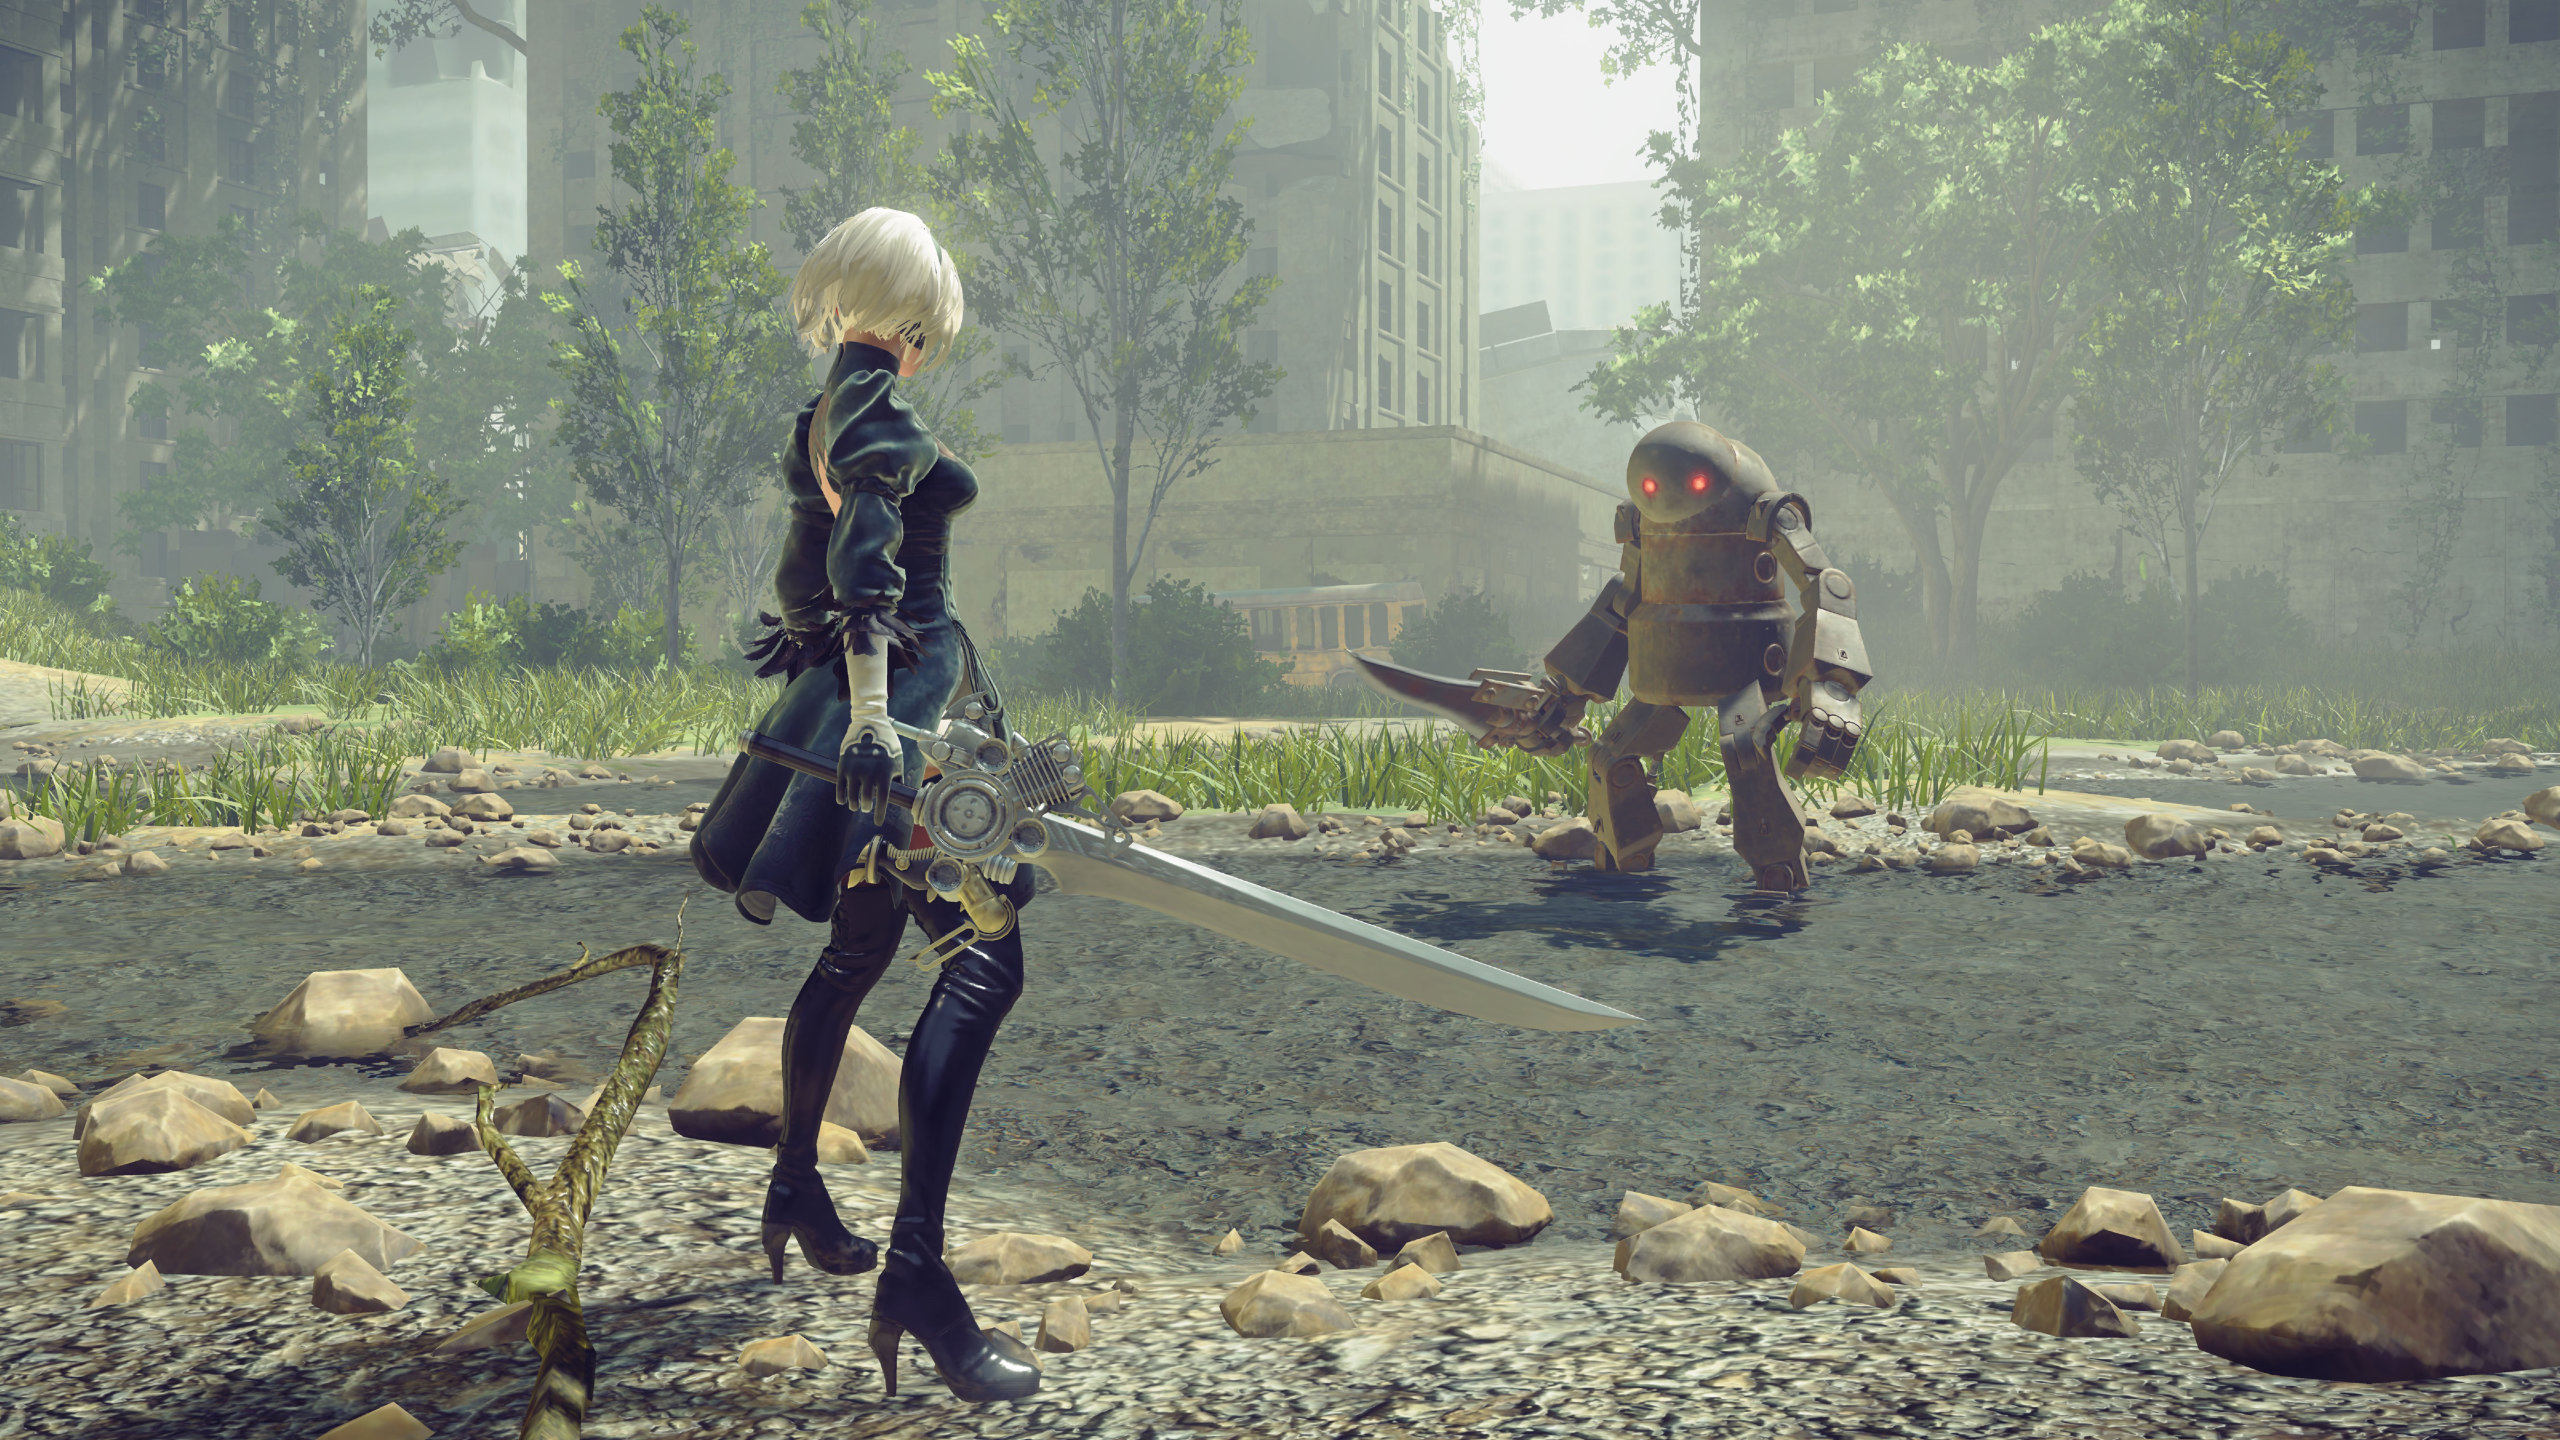 2B faces off against a machine in the City Ruins in NieR: Automata.